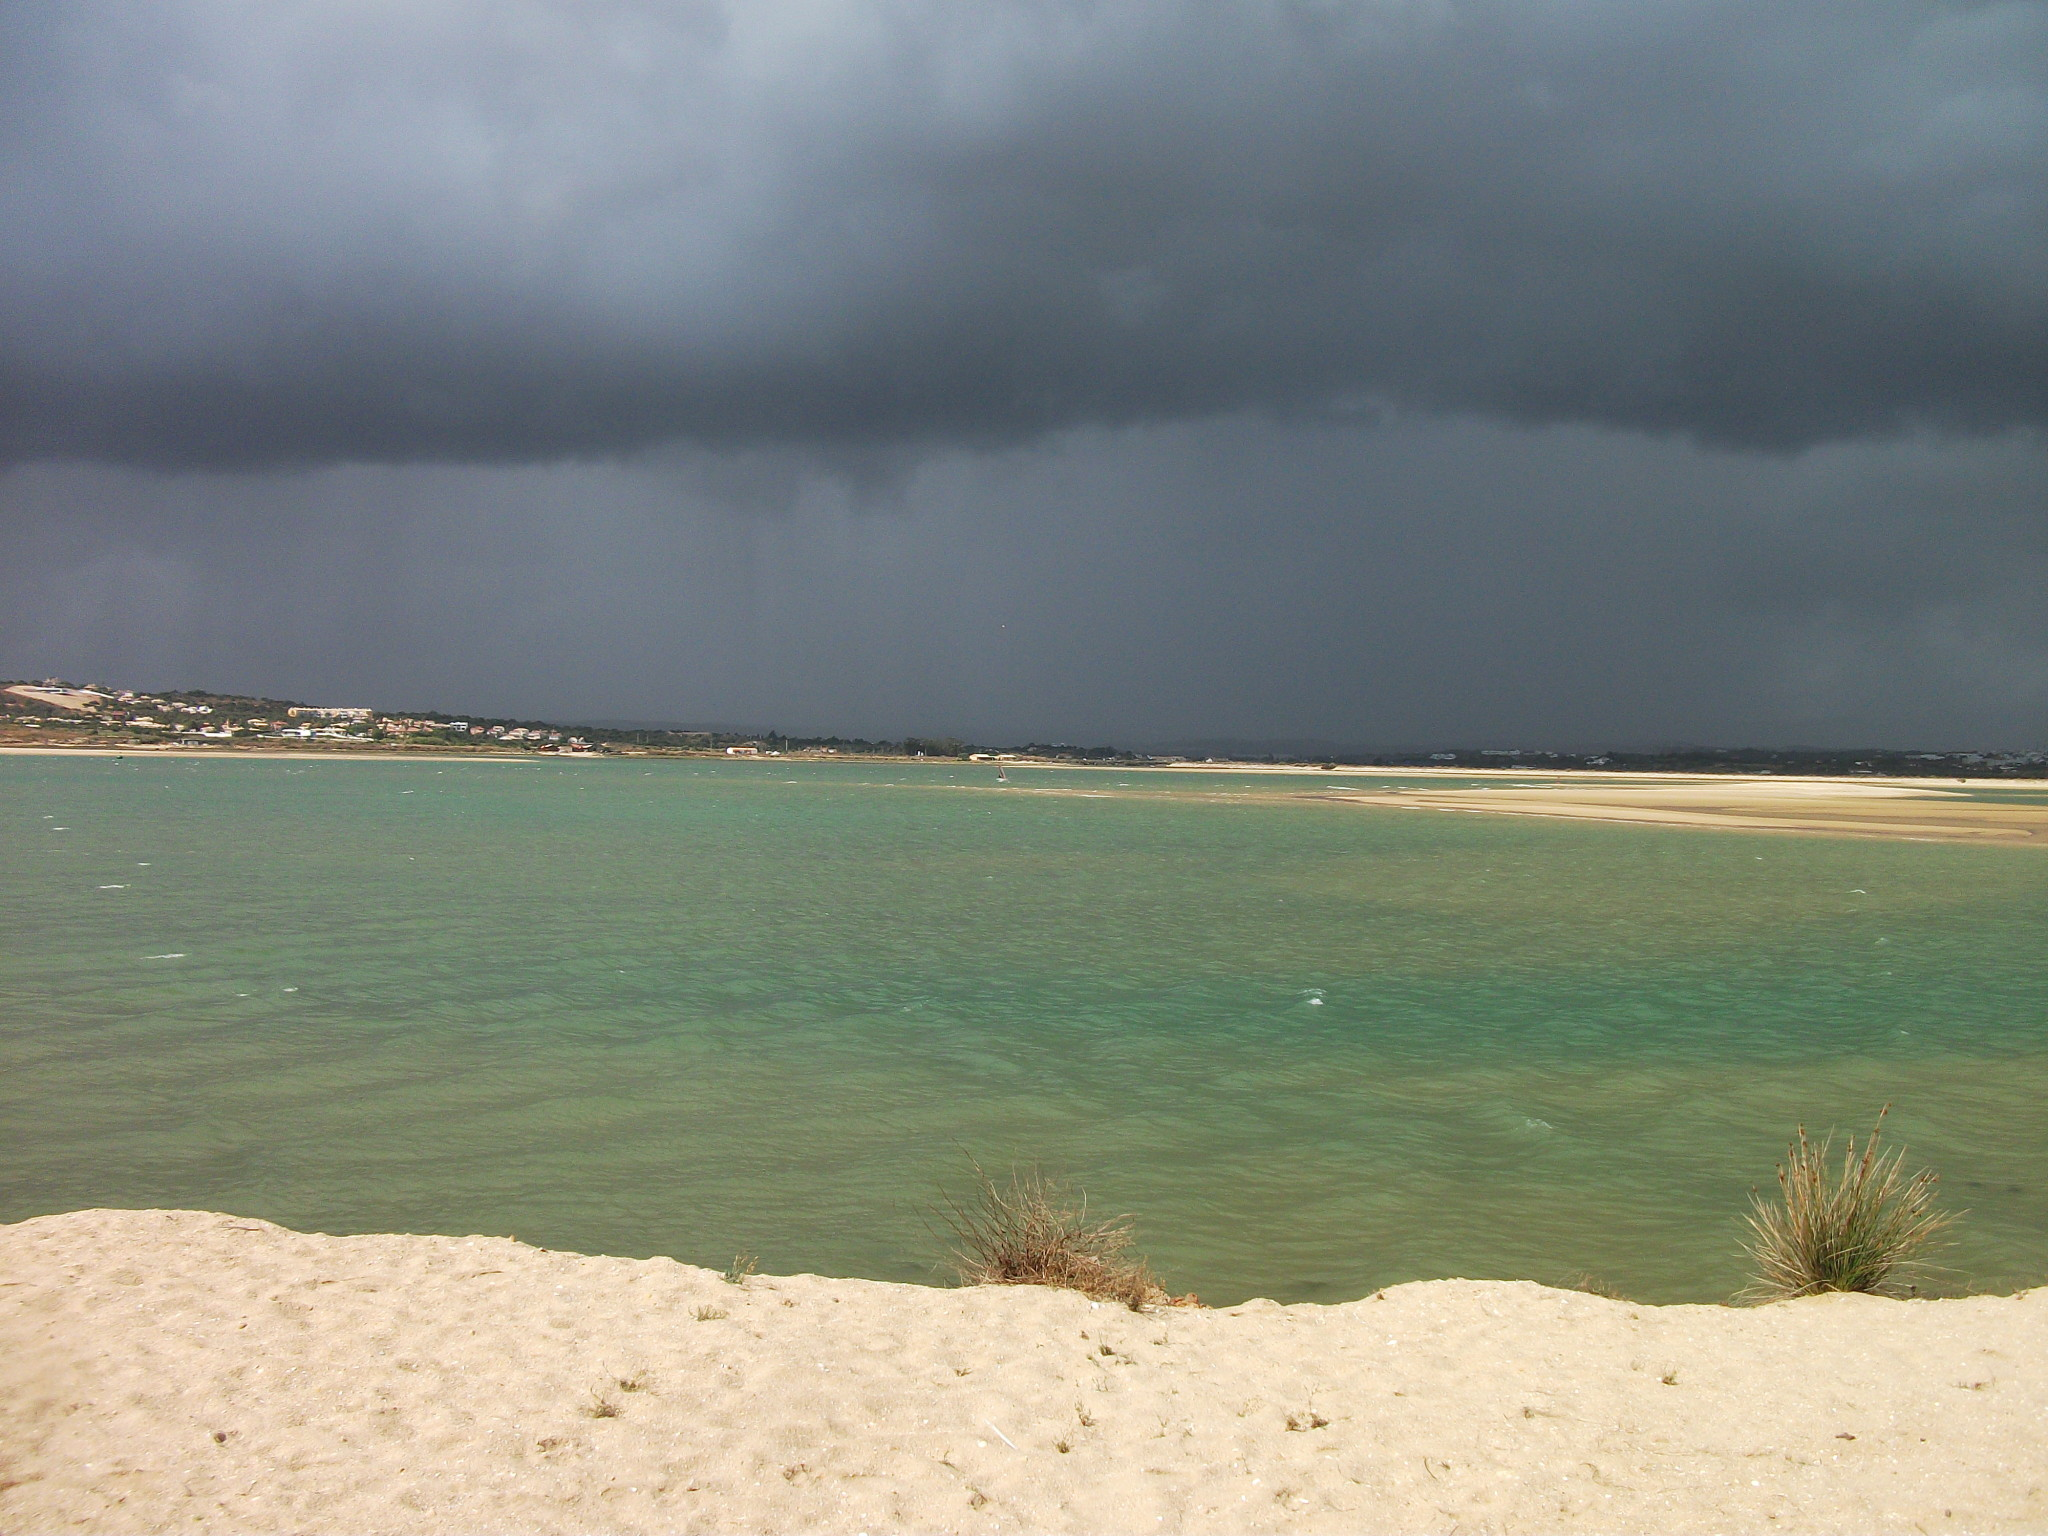 stormy sky over the estuary